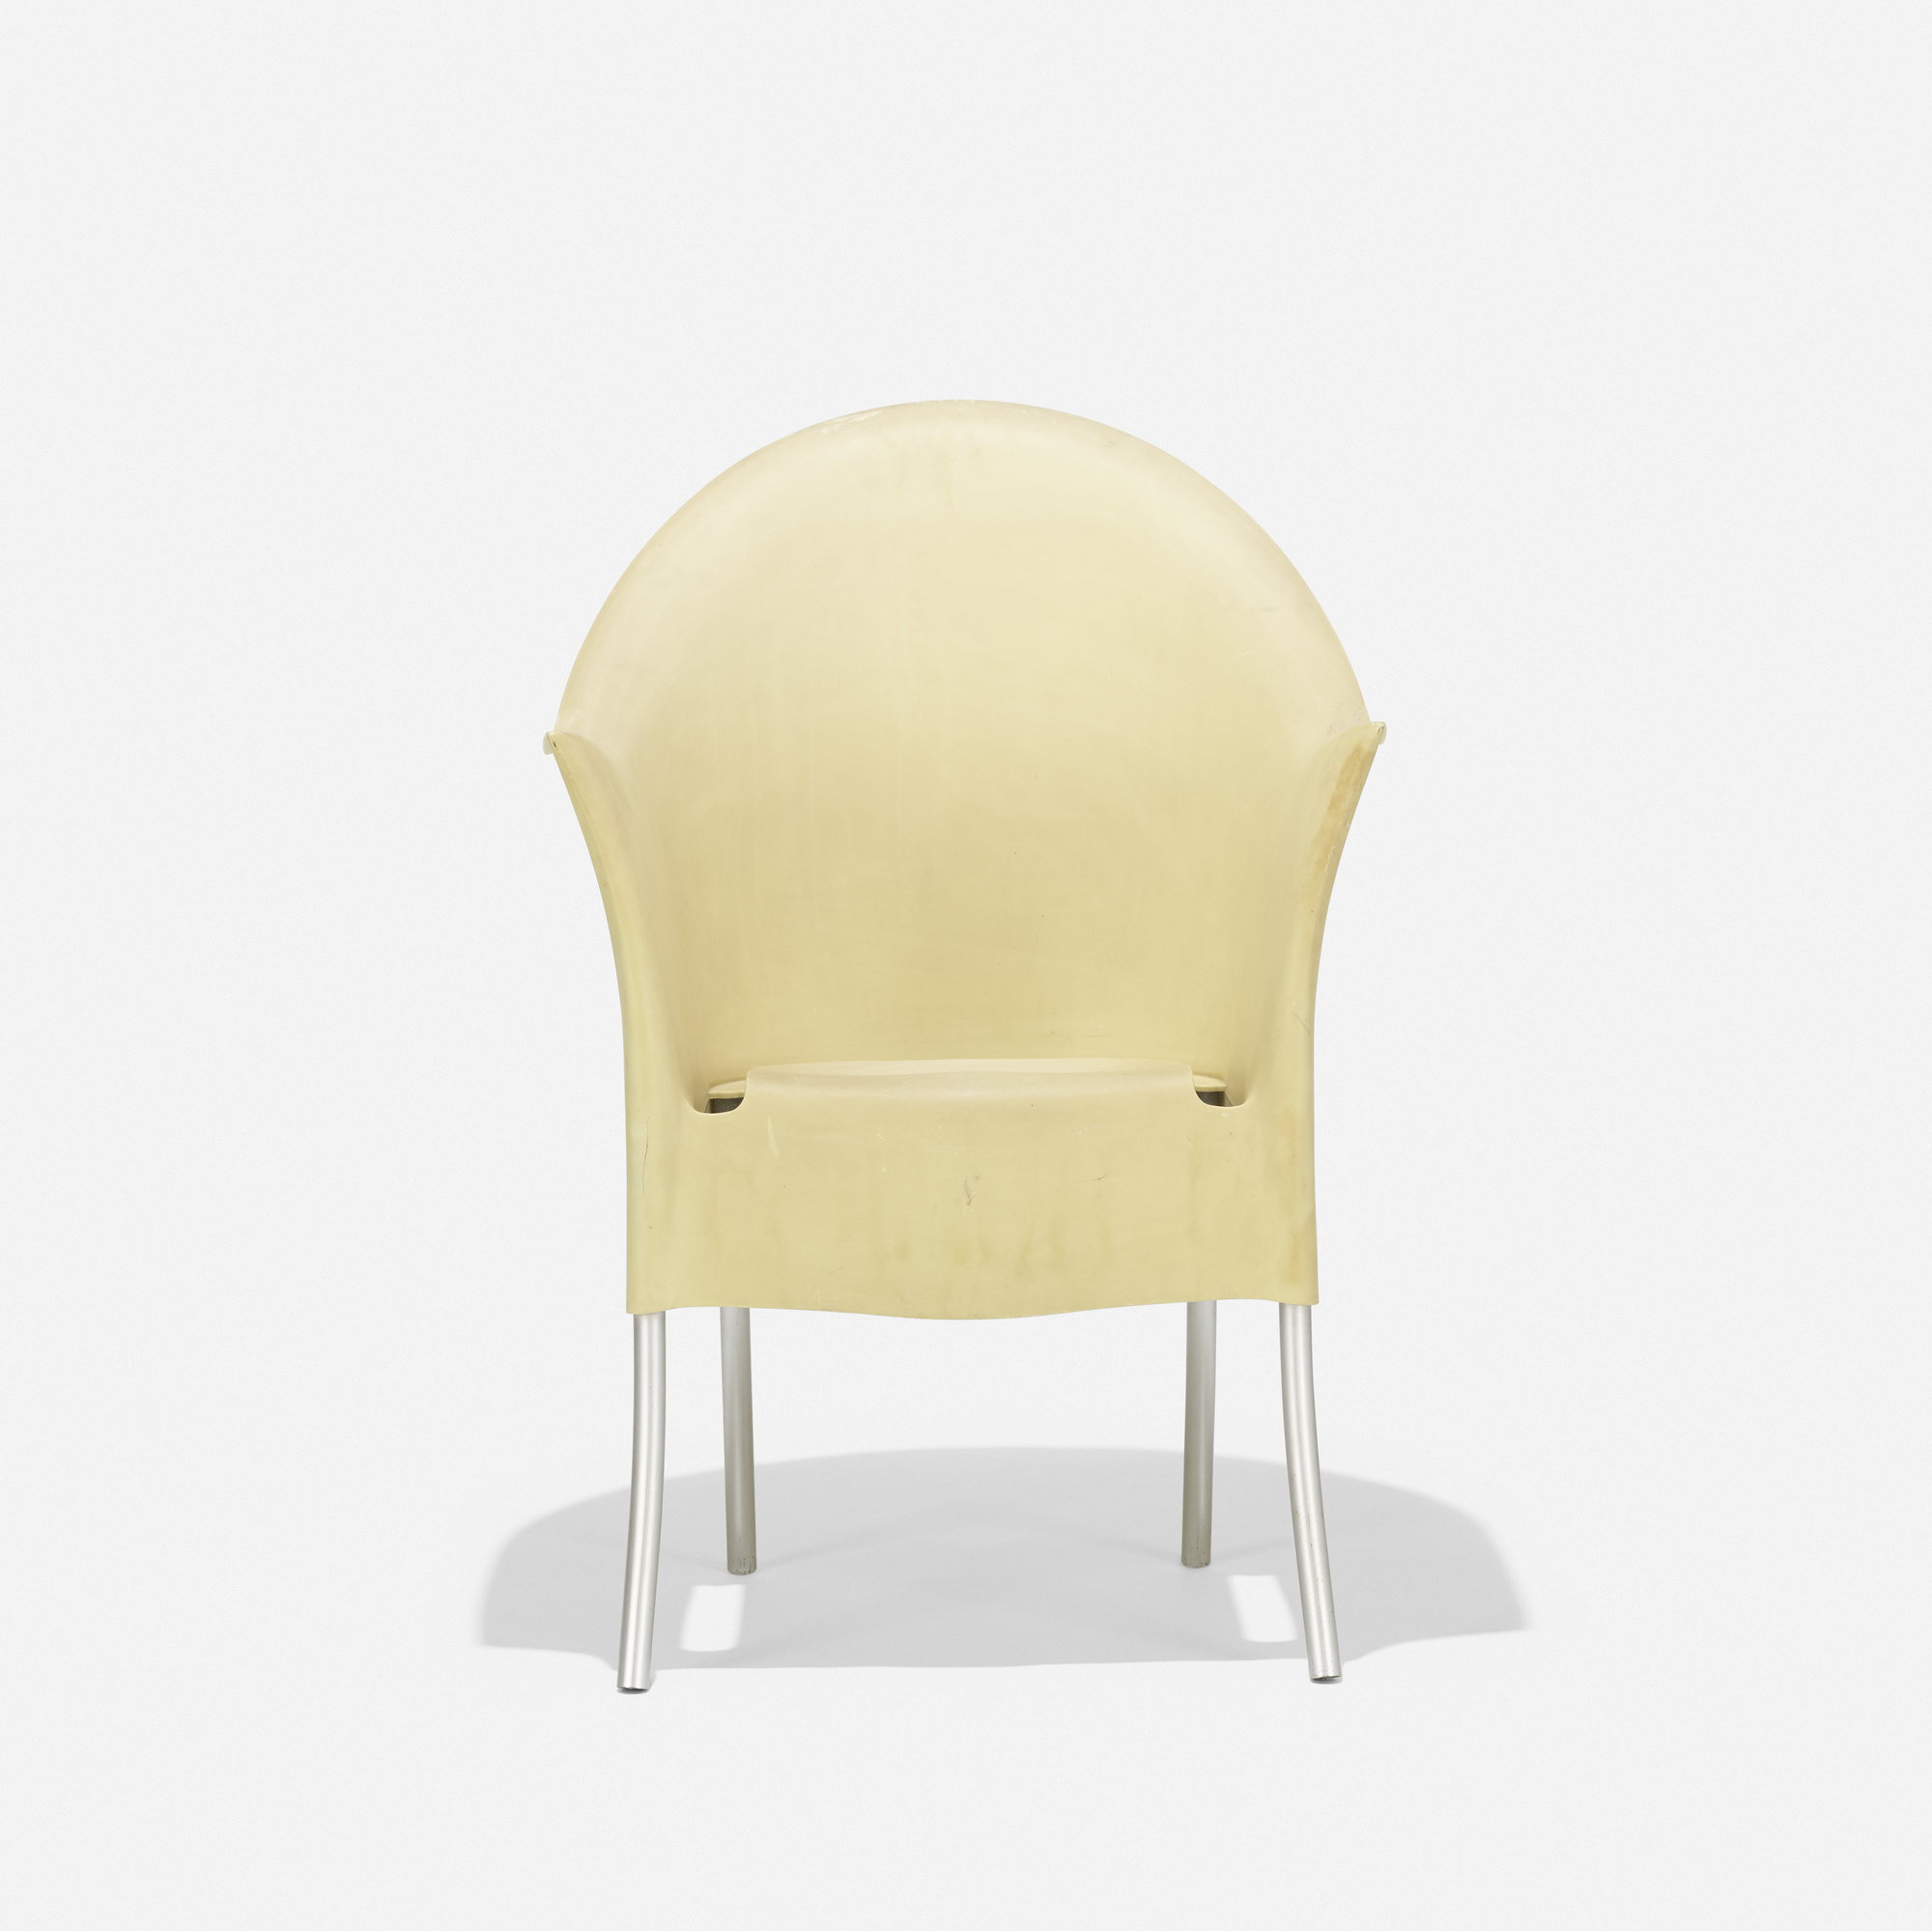 195: Philippe Starck / Lord Yo armchair (1 of 4)